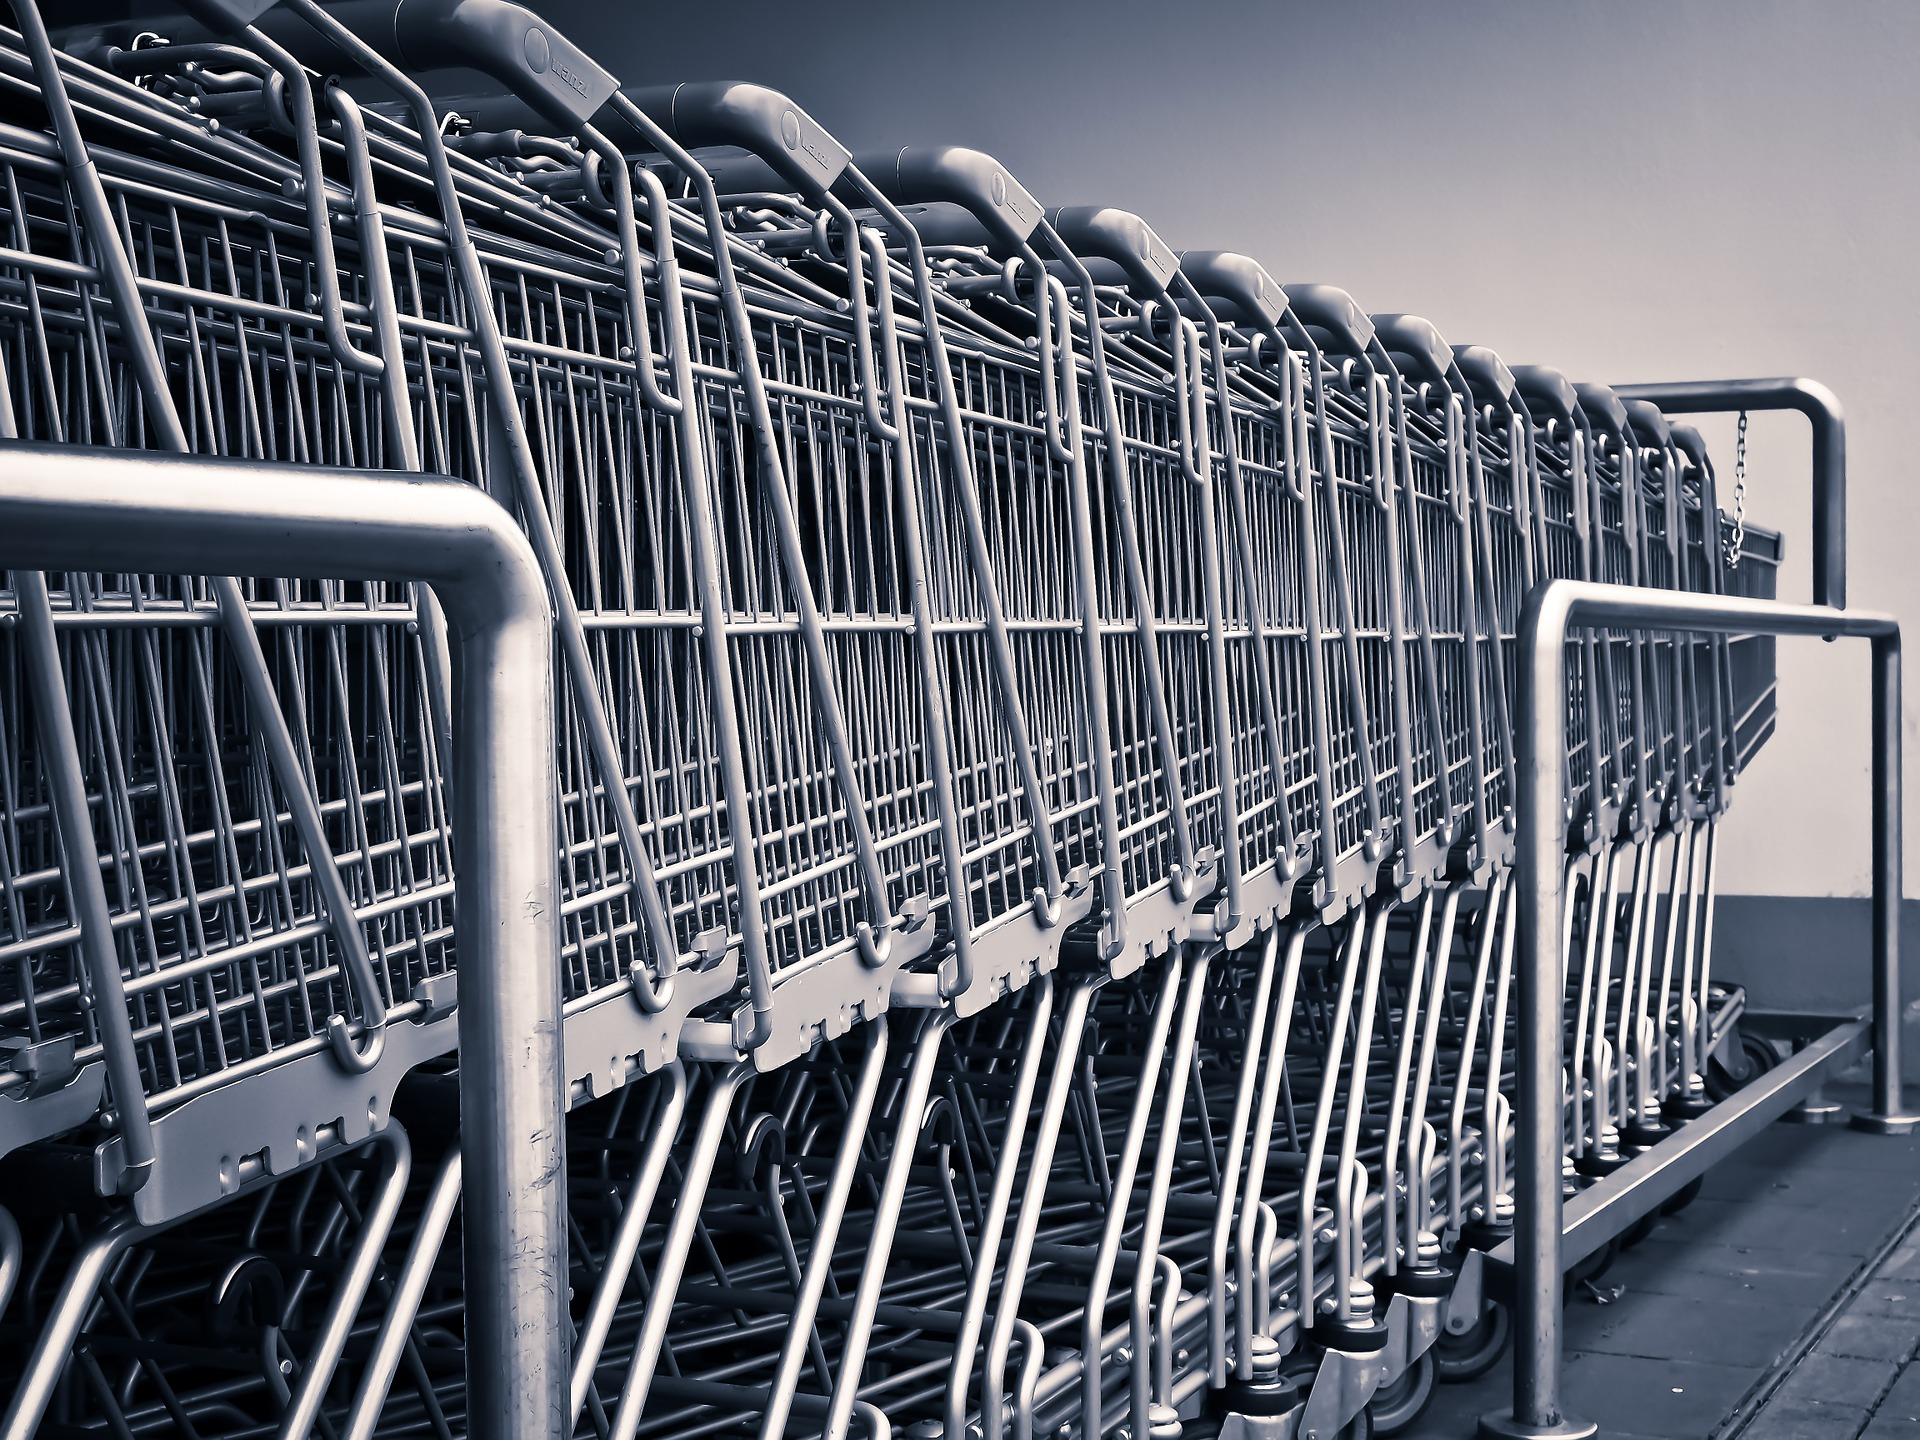 Has Online Shopping Changed the Way People Live? - shopping trollies